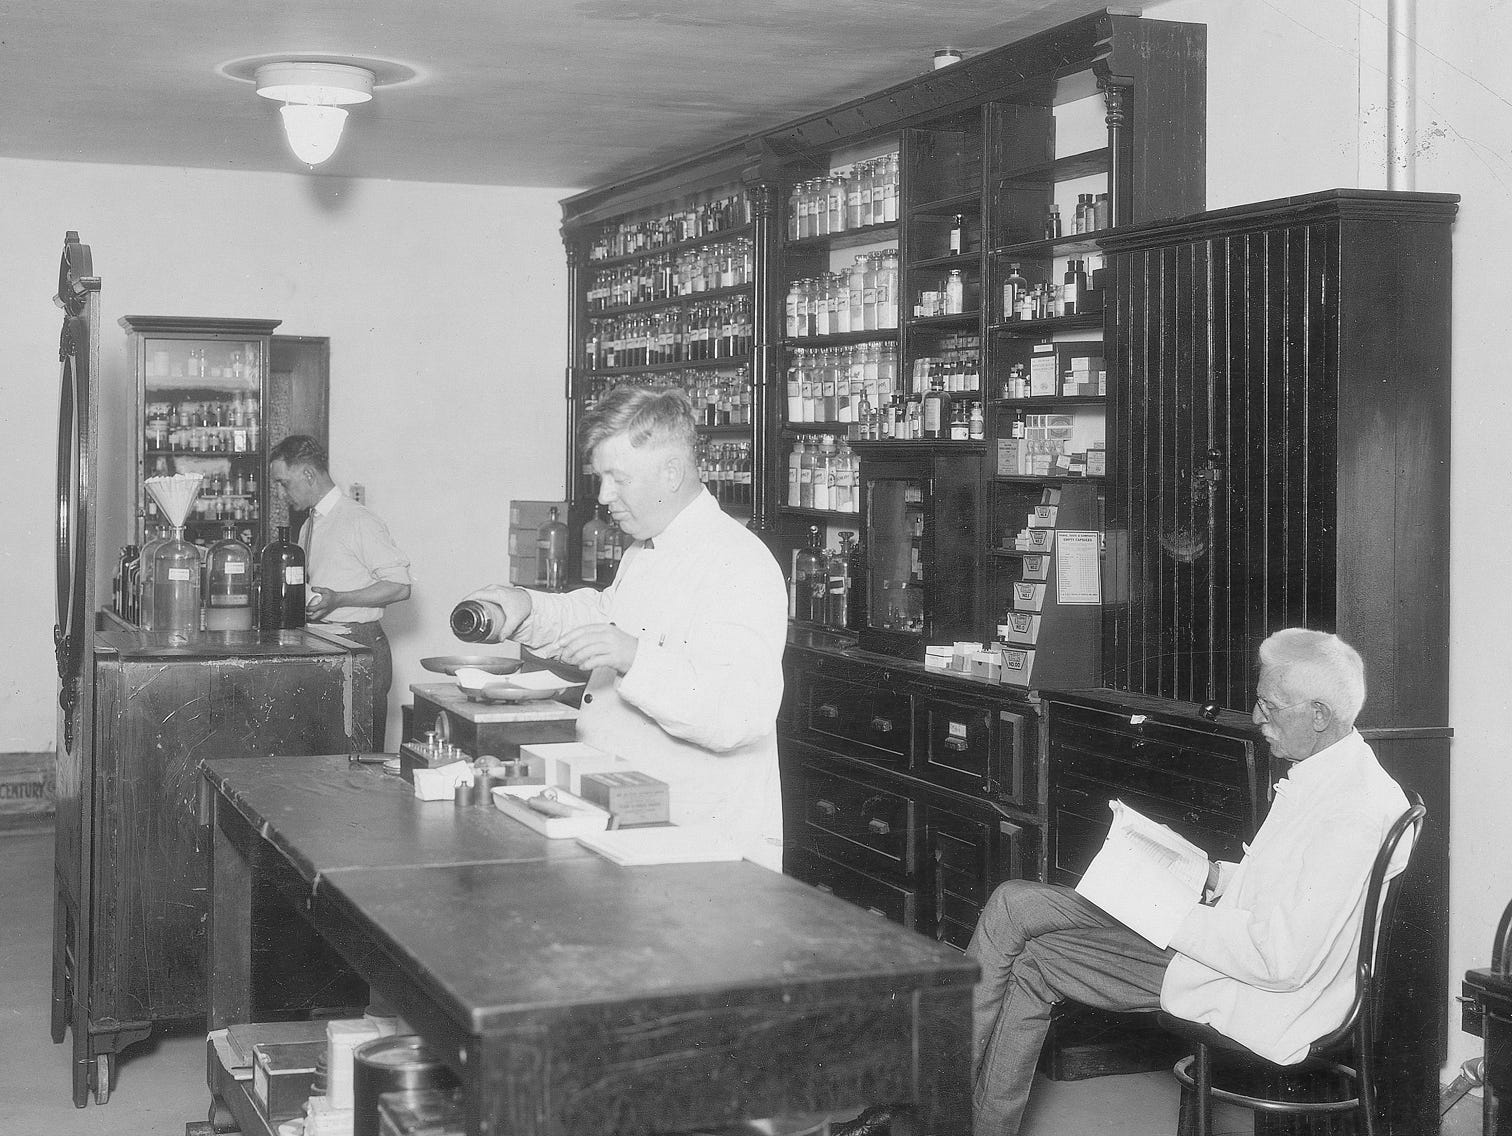 The drug store in the basement of the left wing of the City Hospital (now Wishard) in August 1924.  Druggist Walter Starrett, H. B. McCockley and J.E. Allen are shown.